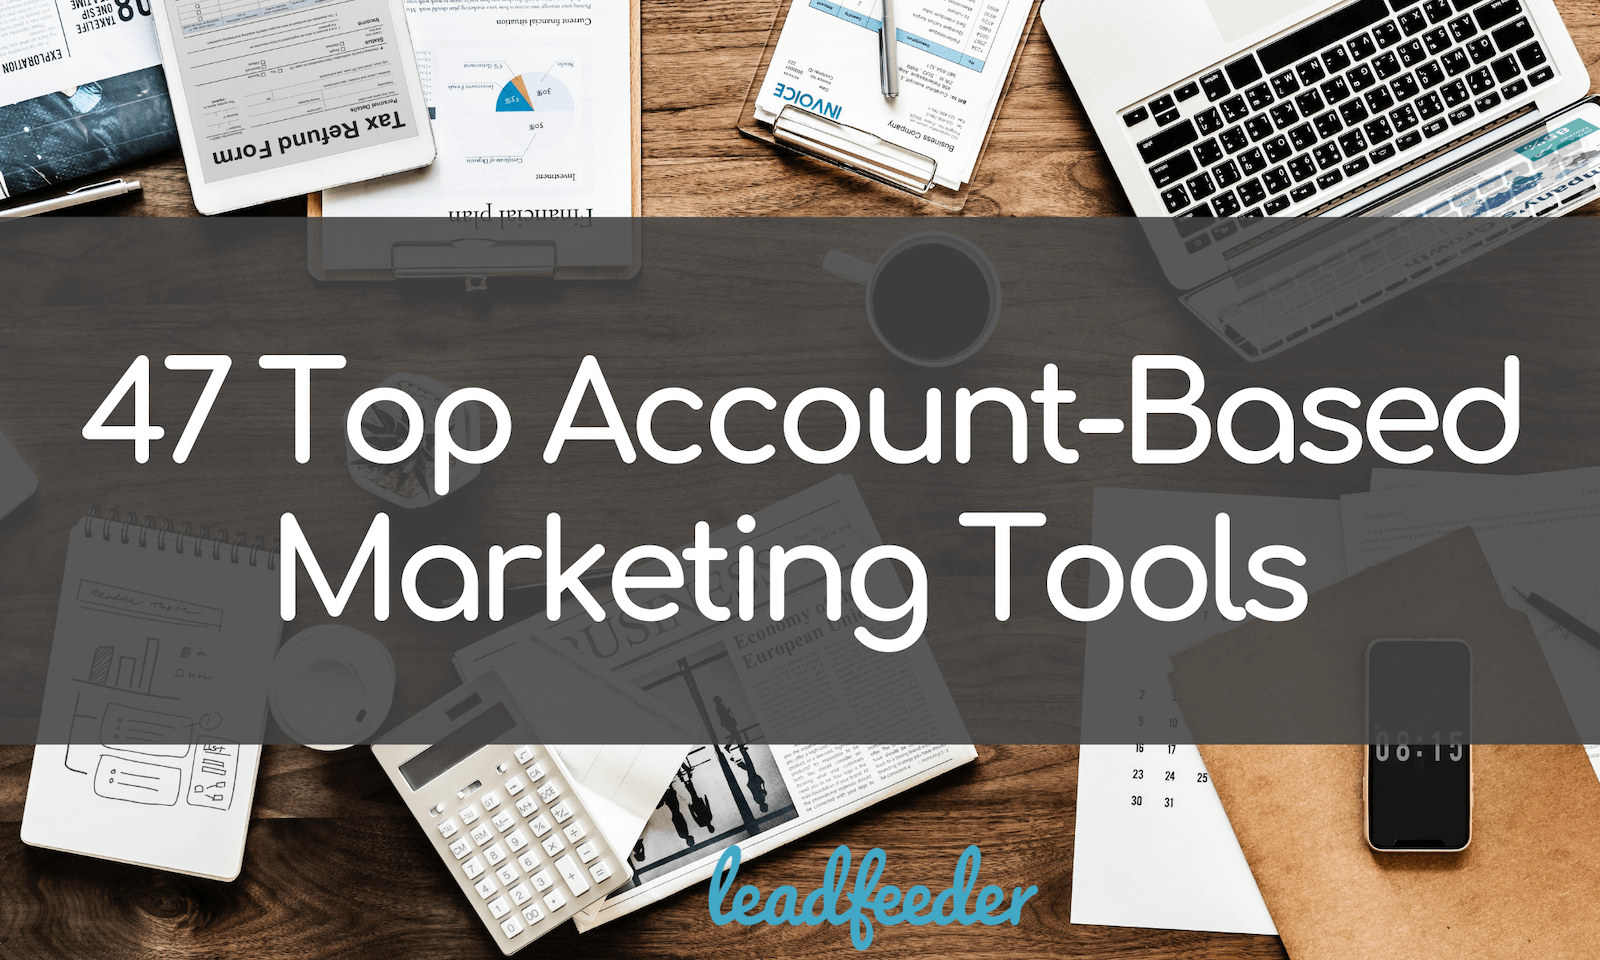 47 Top Account-Based Marketing Tools for 2020